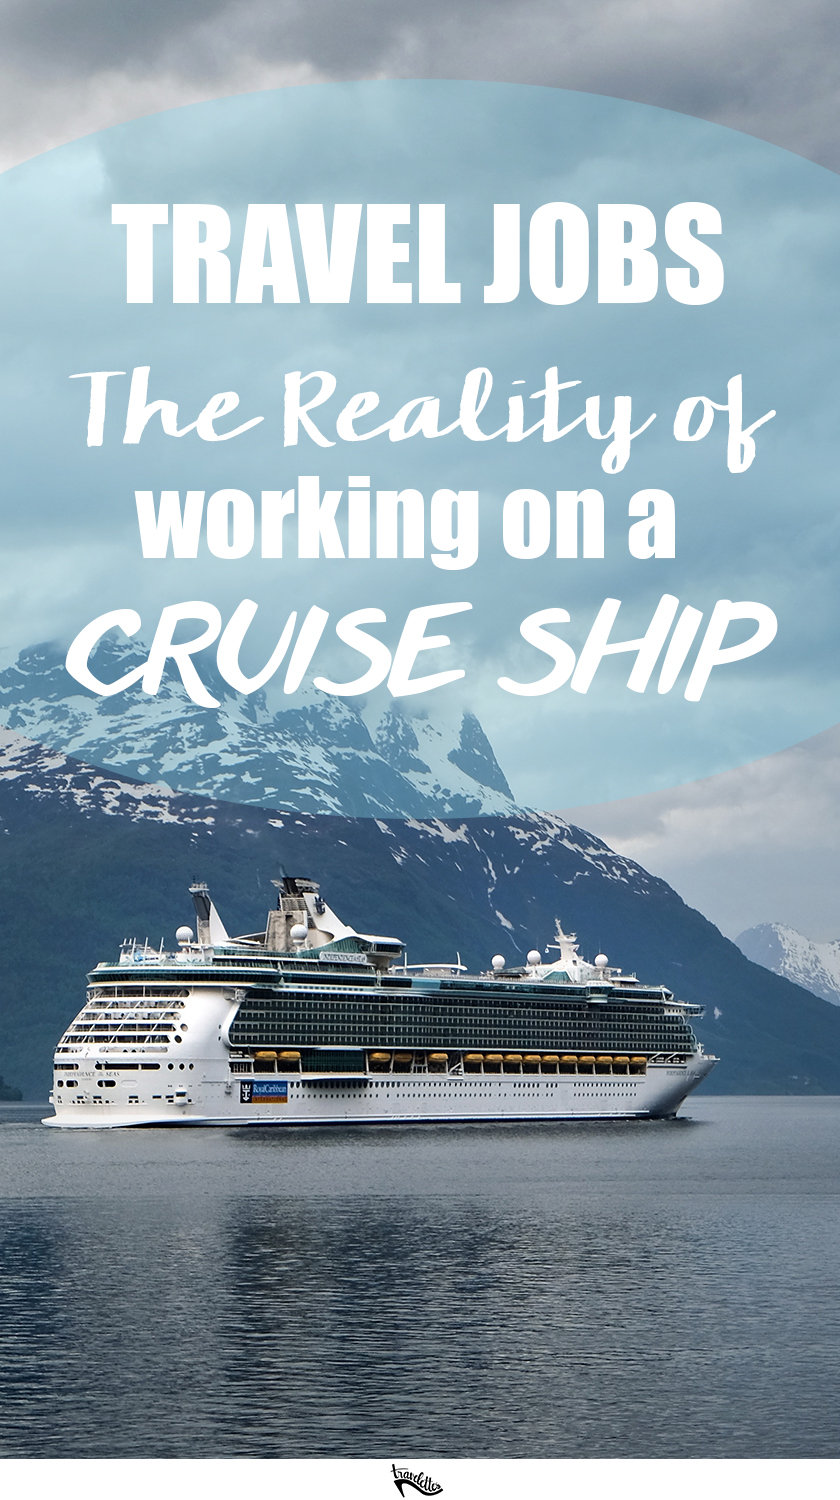 Do you want to have a career in a job that lets you travel the world? Then a a job on a cruise ship might be for you. But what is working on a cruise ship like?